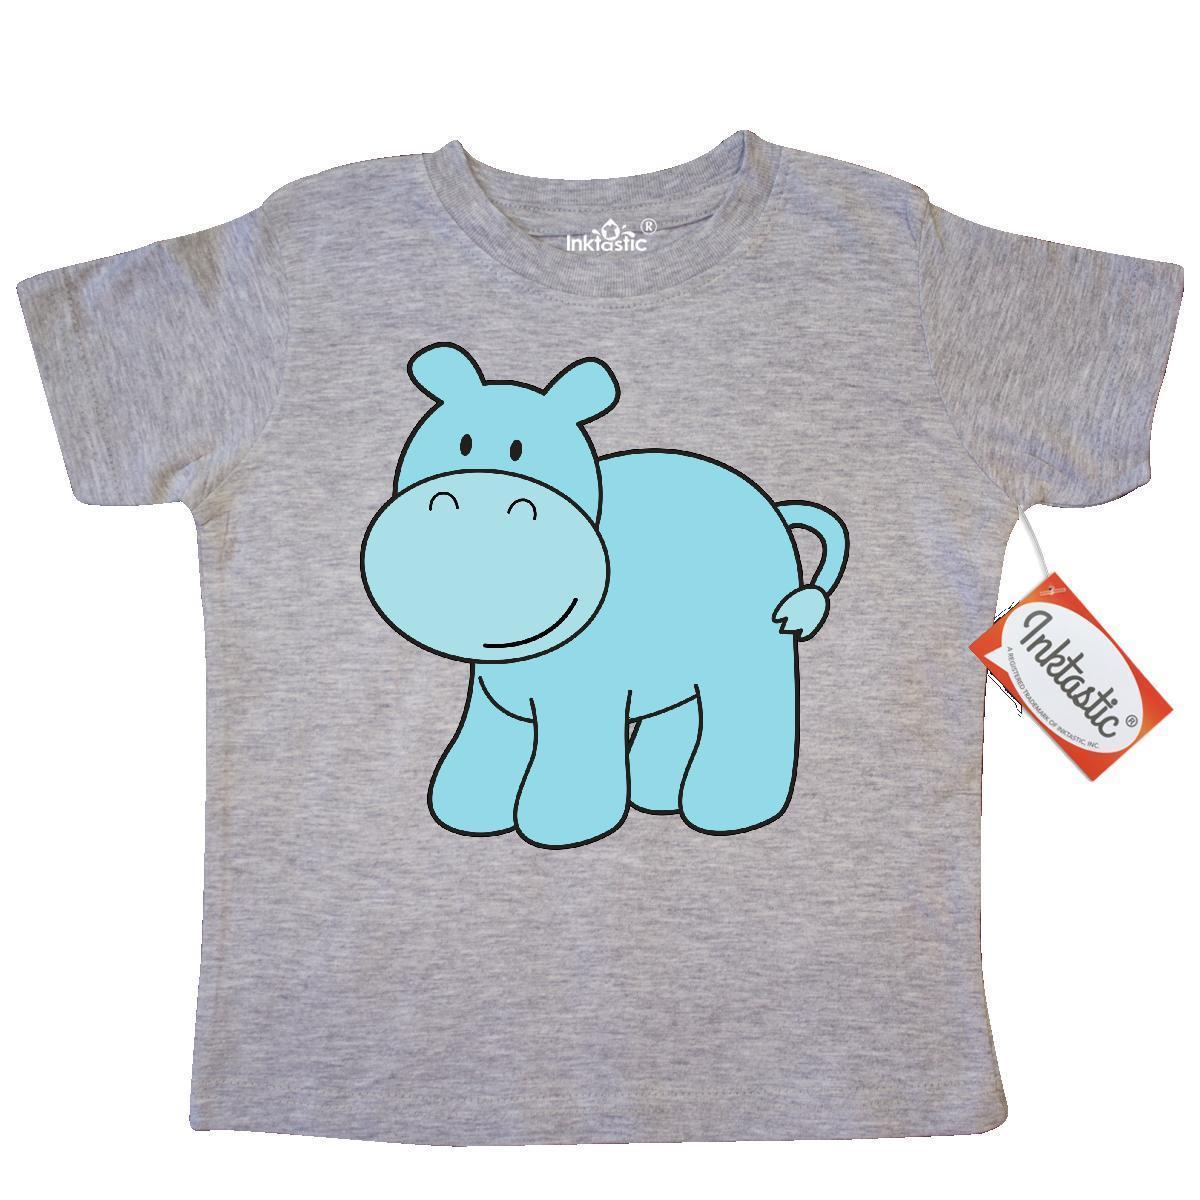 73f735d3f Inktastic Cute Blue Hippo Toddler T Shirt Hippopotamus Tees. Gift Child Kid  Funny Unisex Casual Tee Gift The T Shirt T Shirts Designer From Tee_spirit,  ...